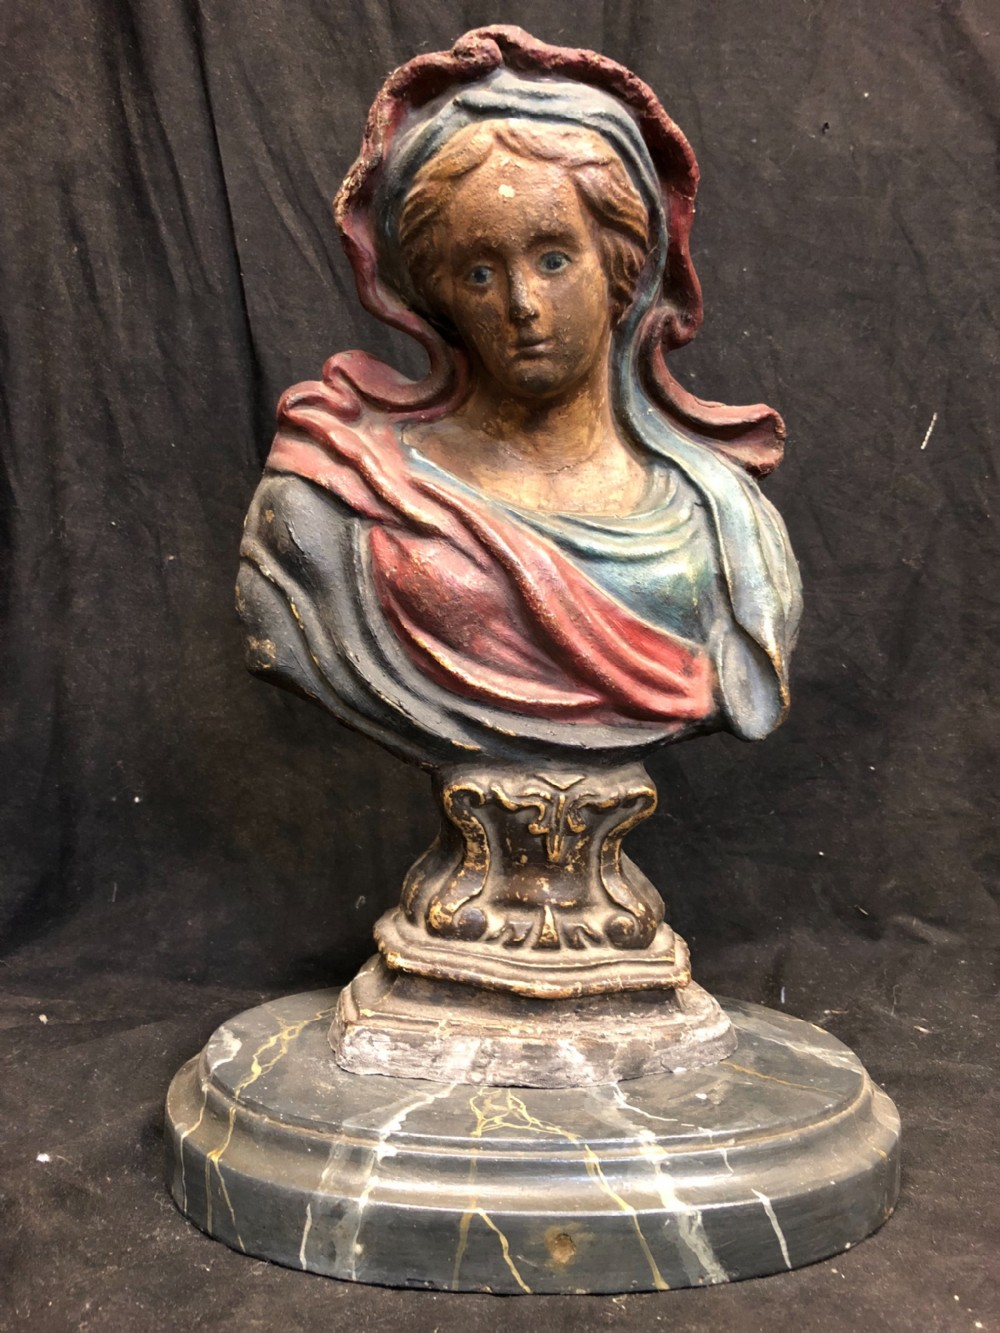 polychrome bust of the virgin mary made in papiermch